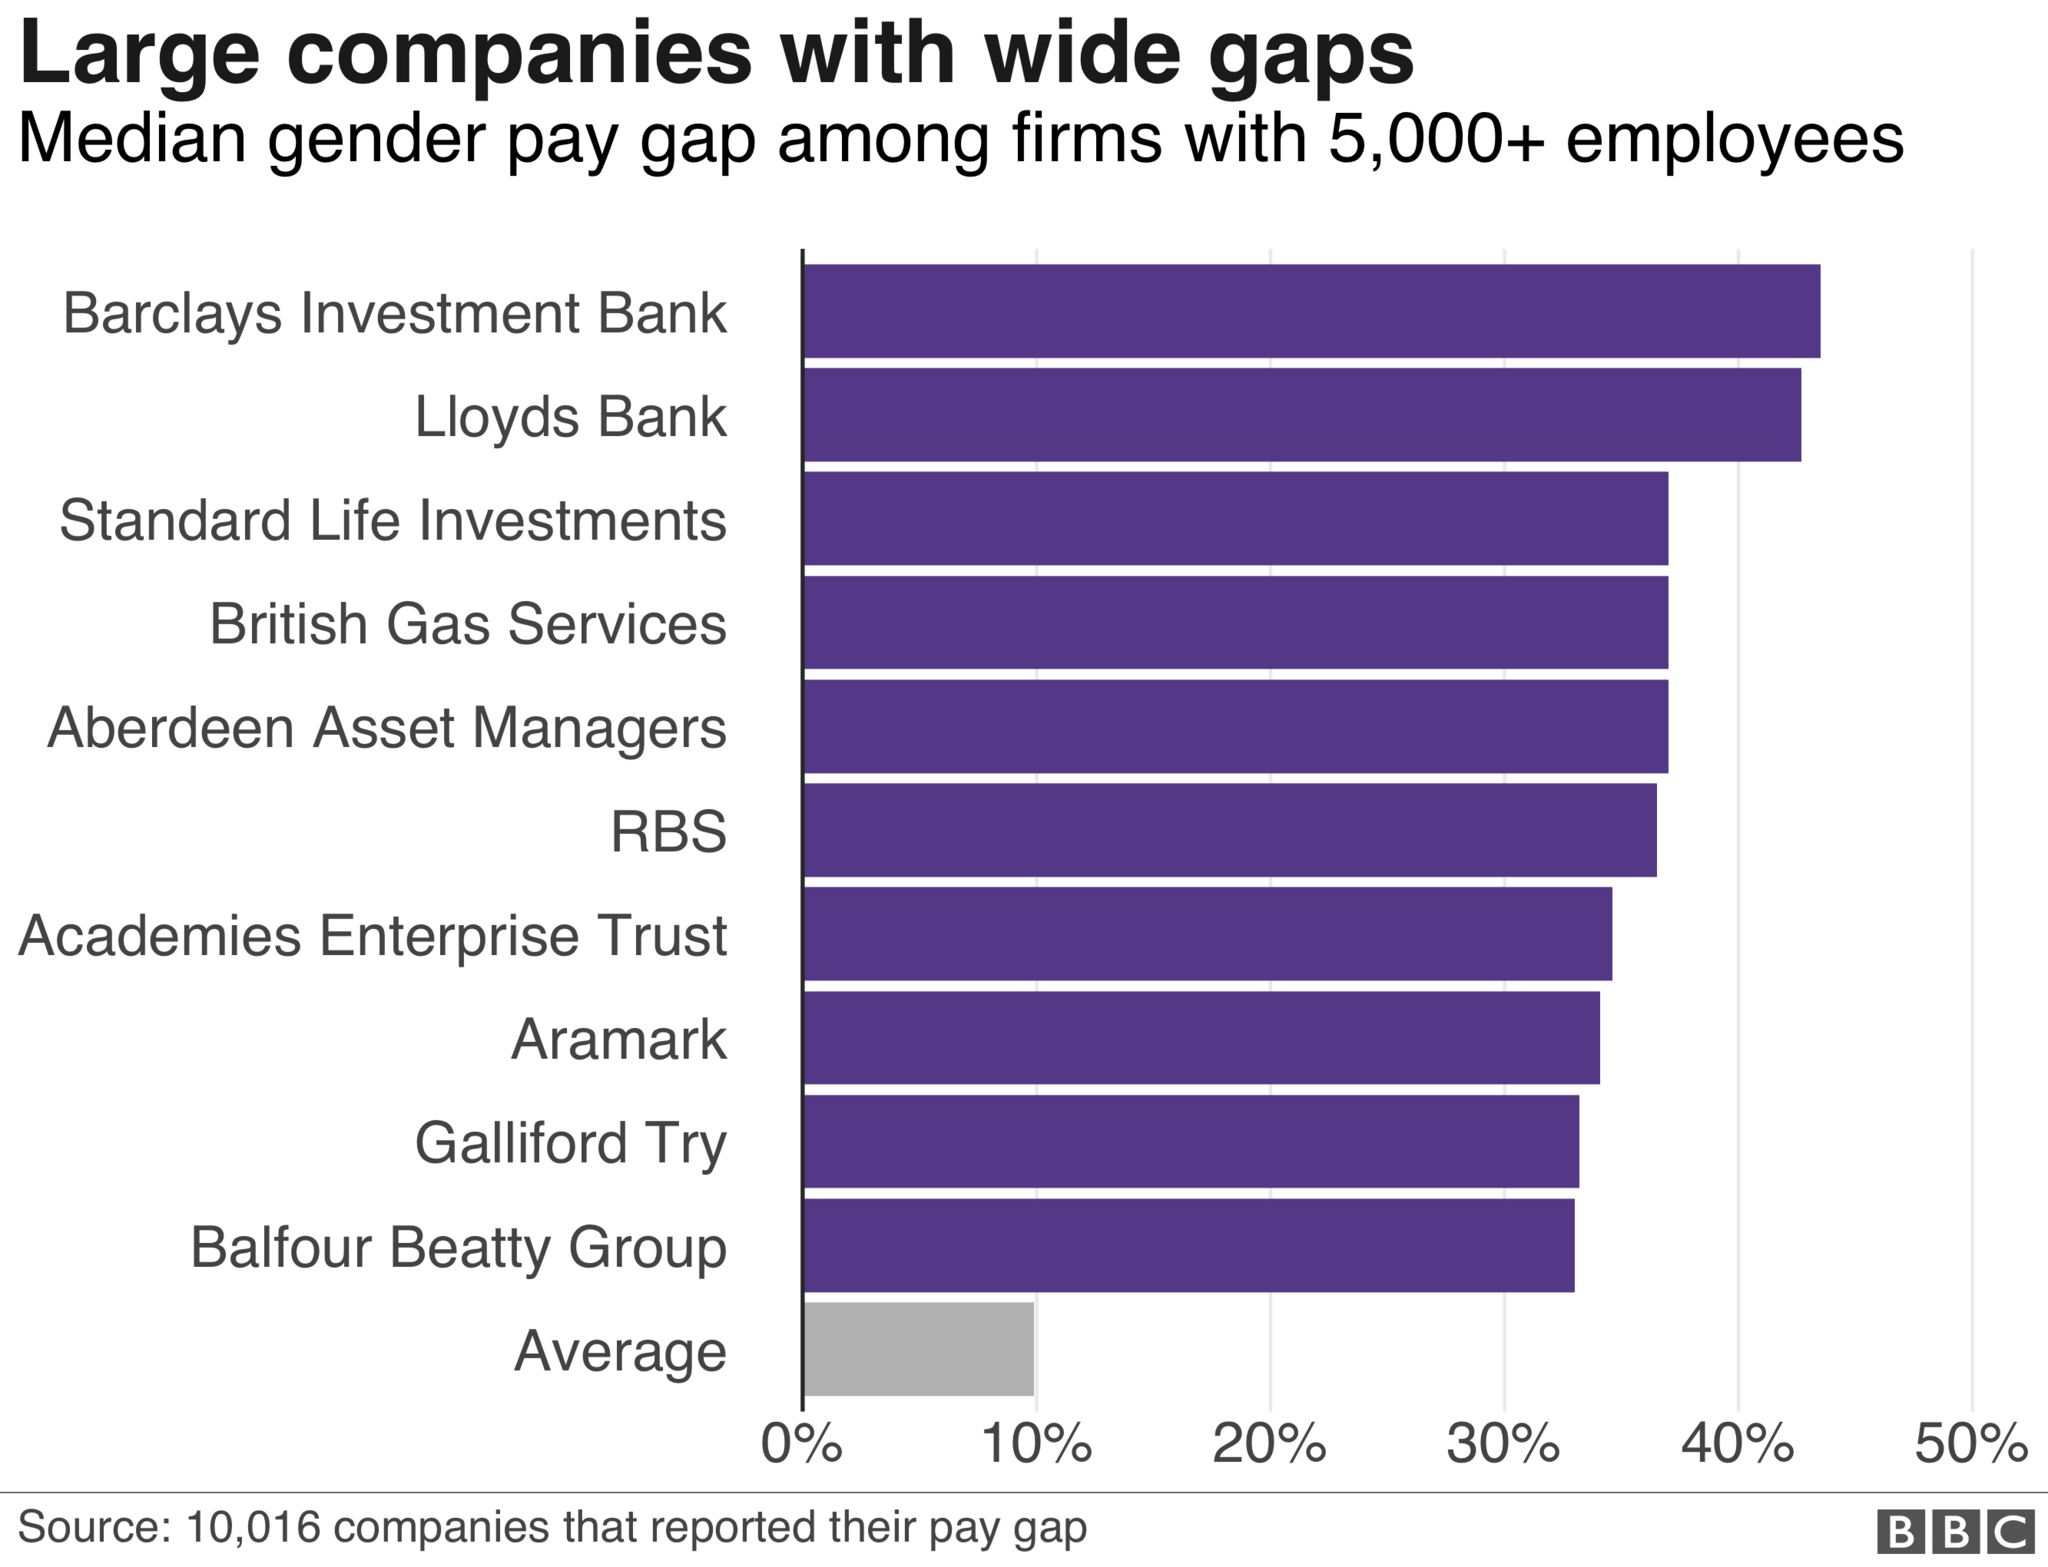 Large firms with wide gaps